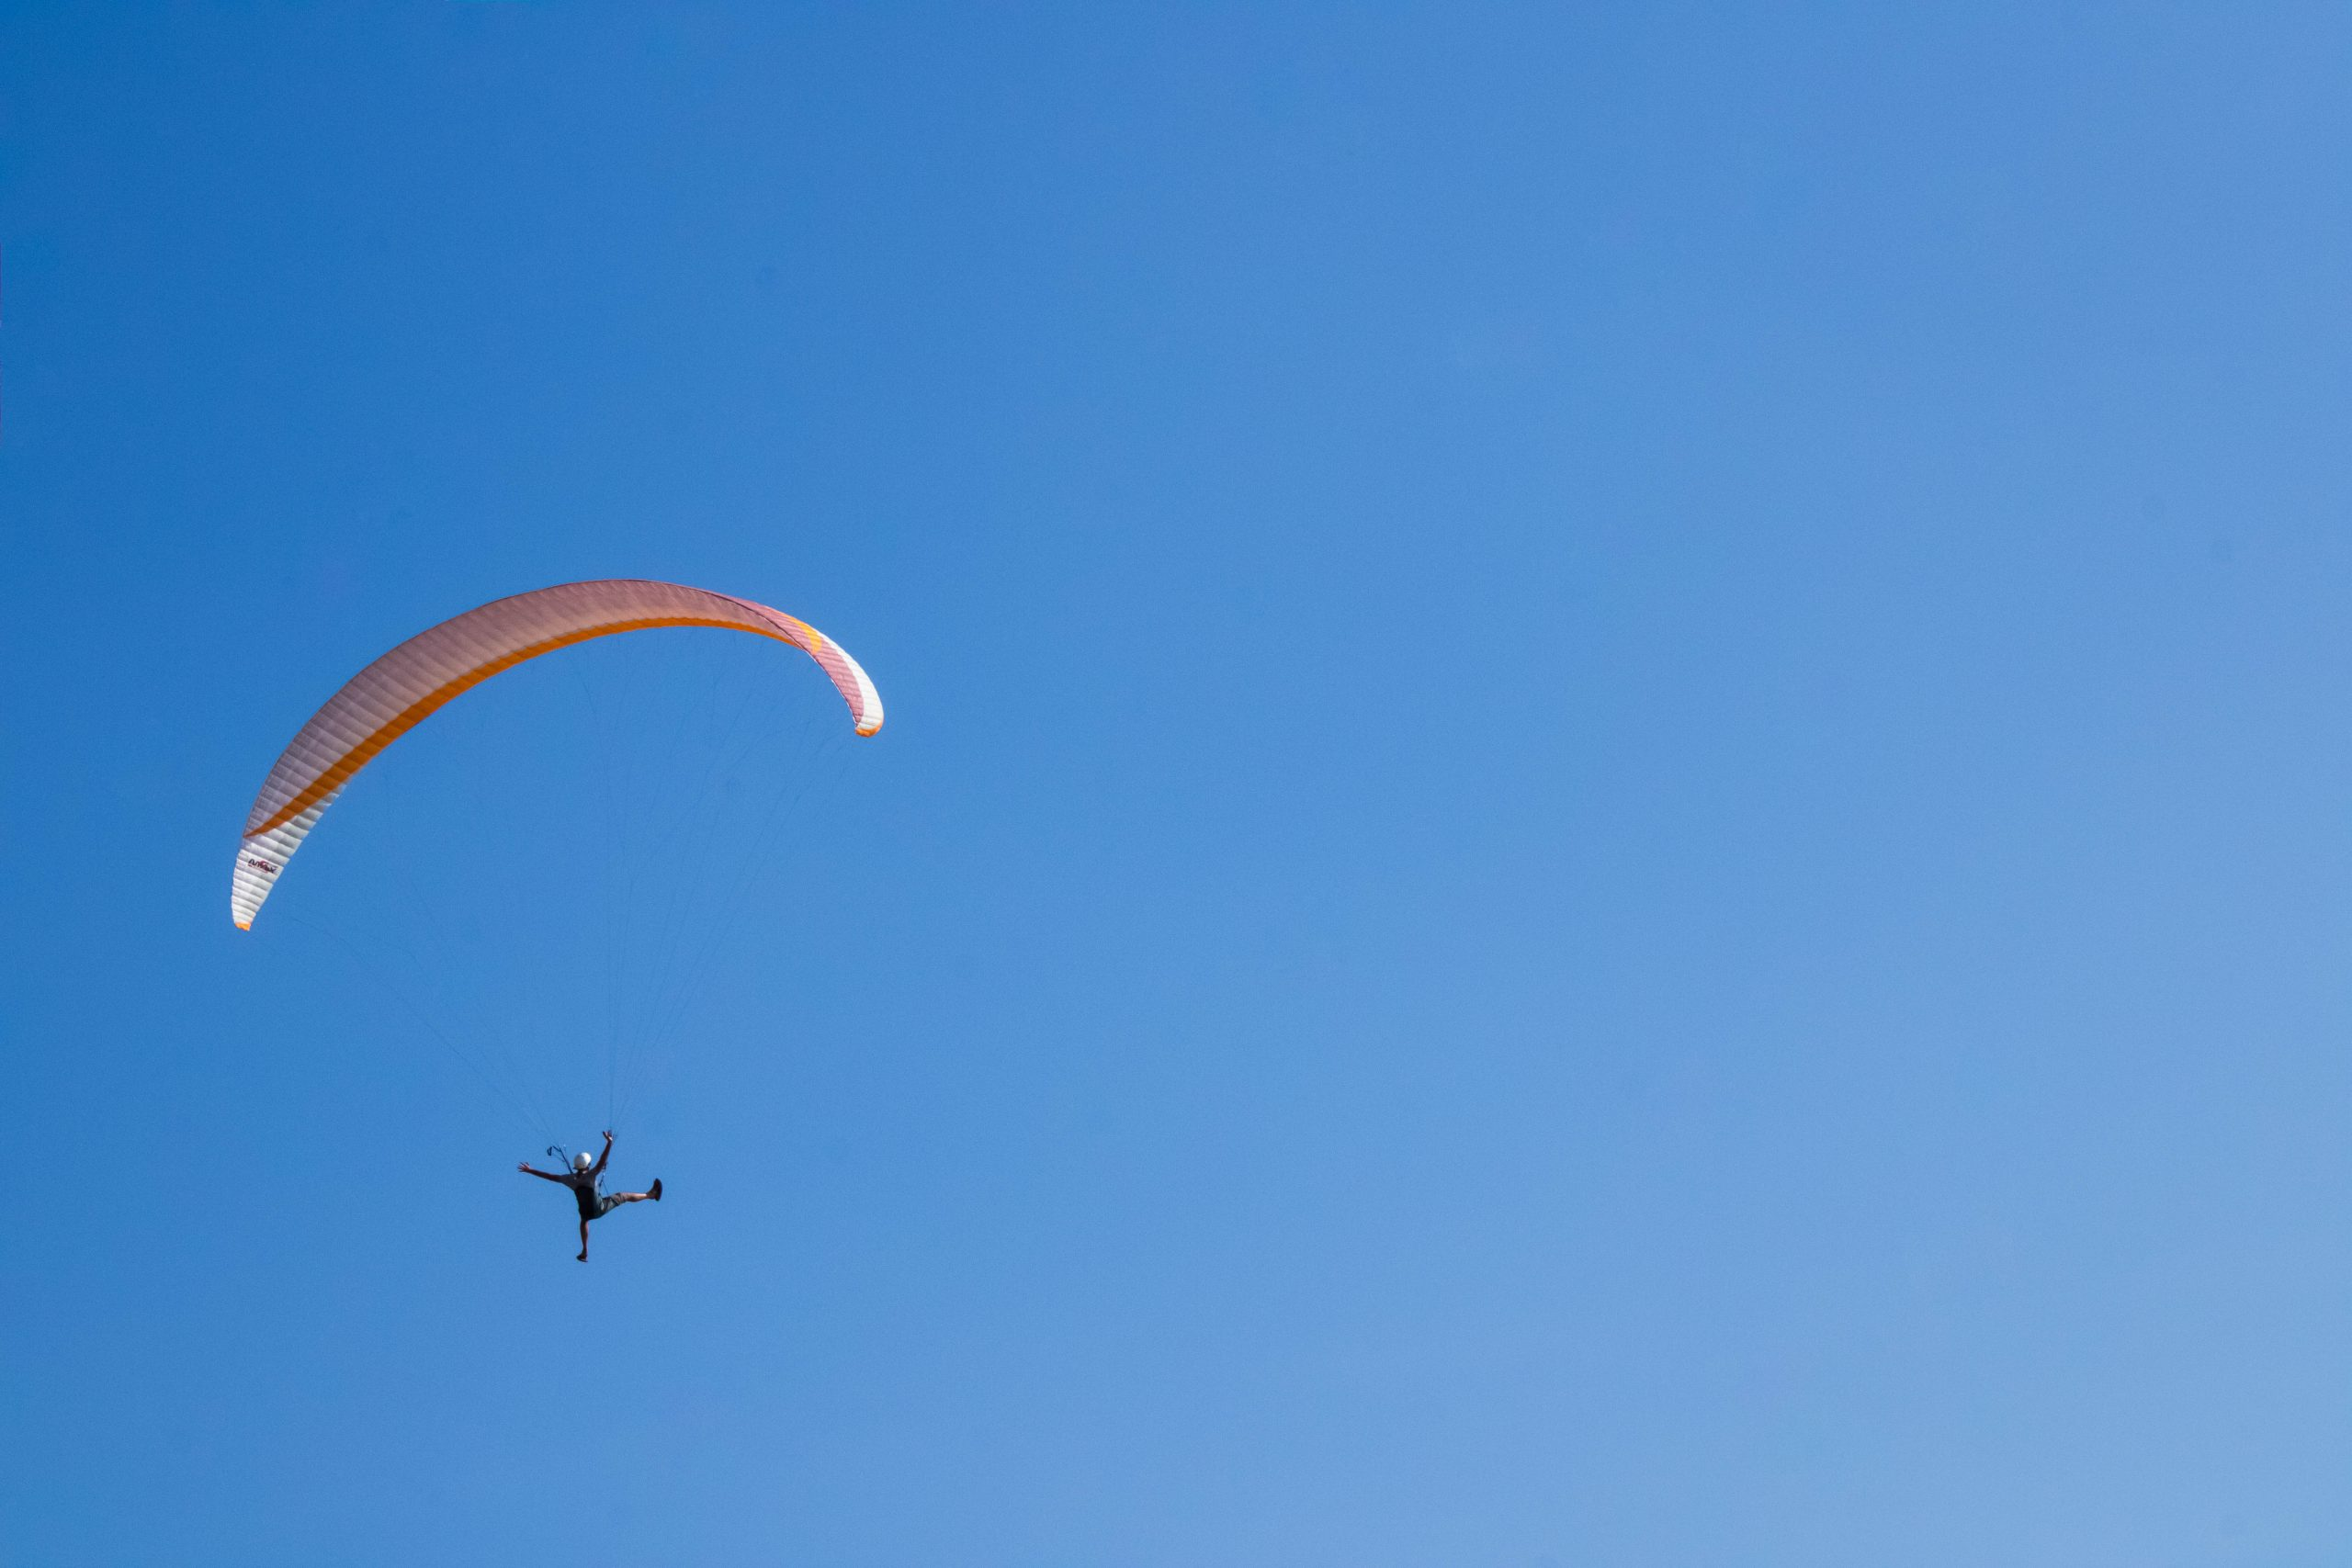 Powered Paragliding in a Clear Sky